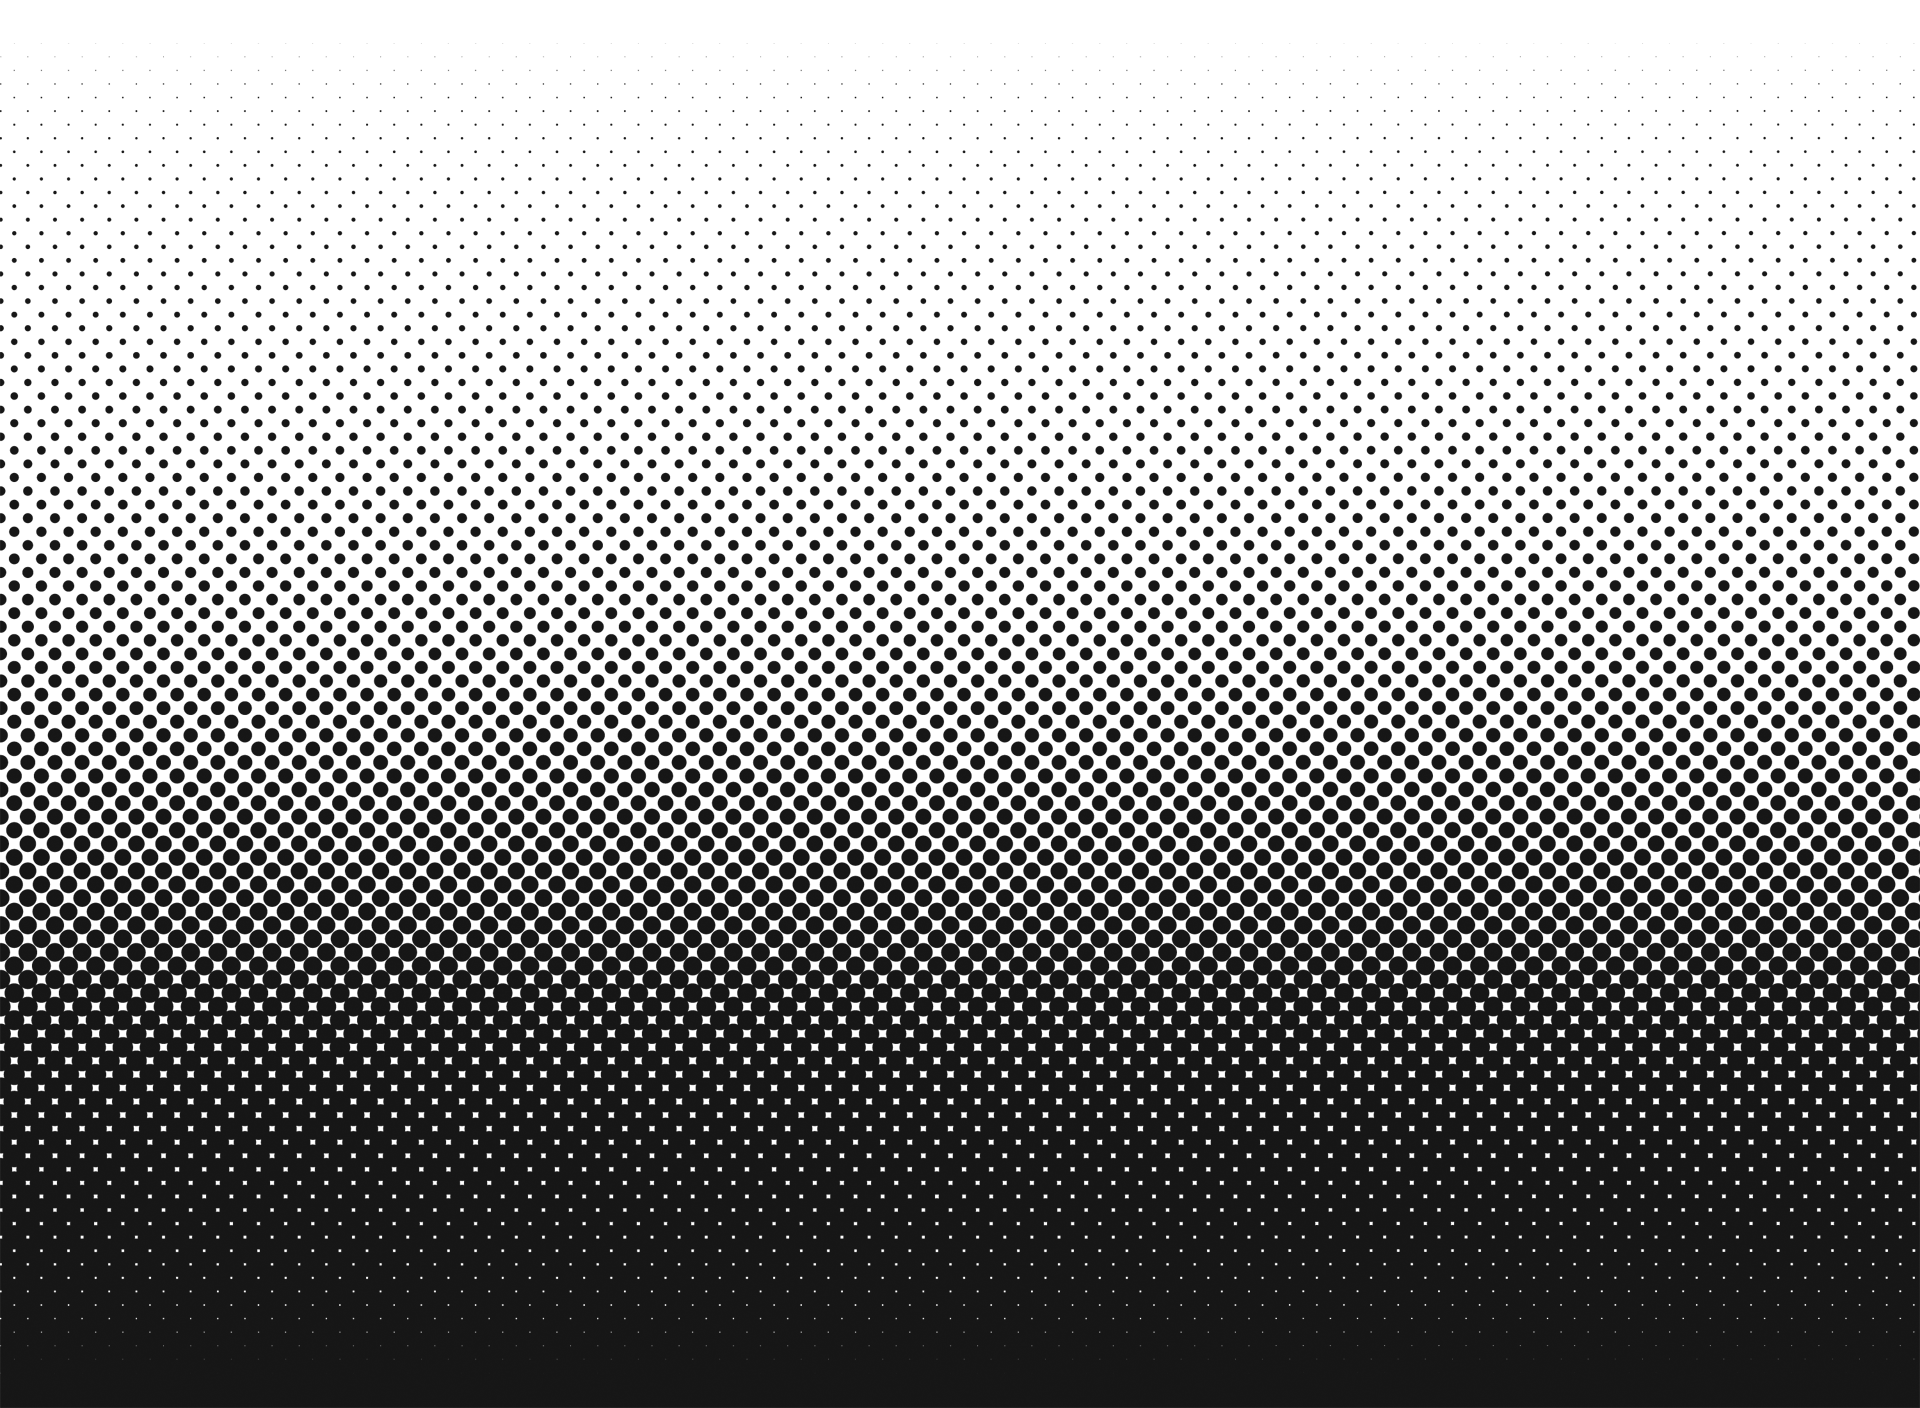 Fading dots png. Gradient football manager info